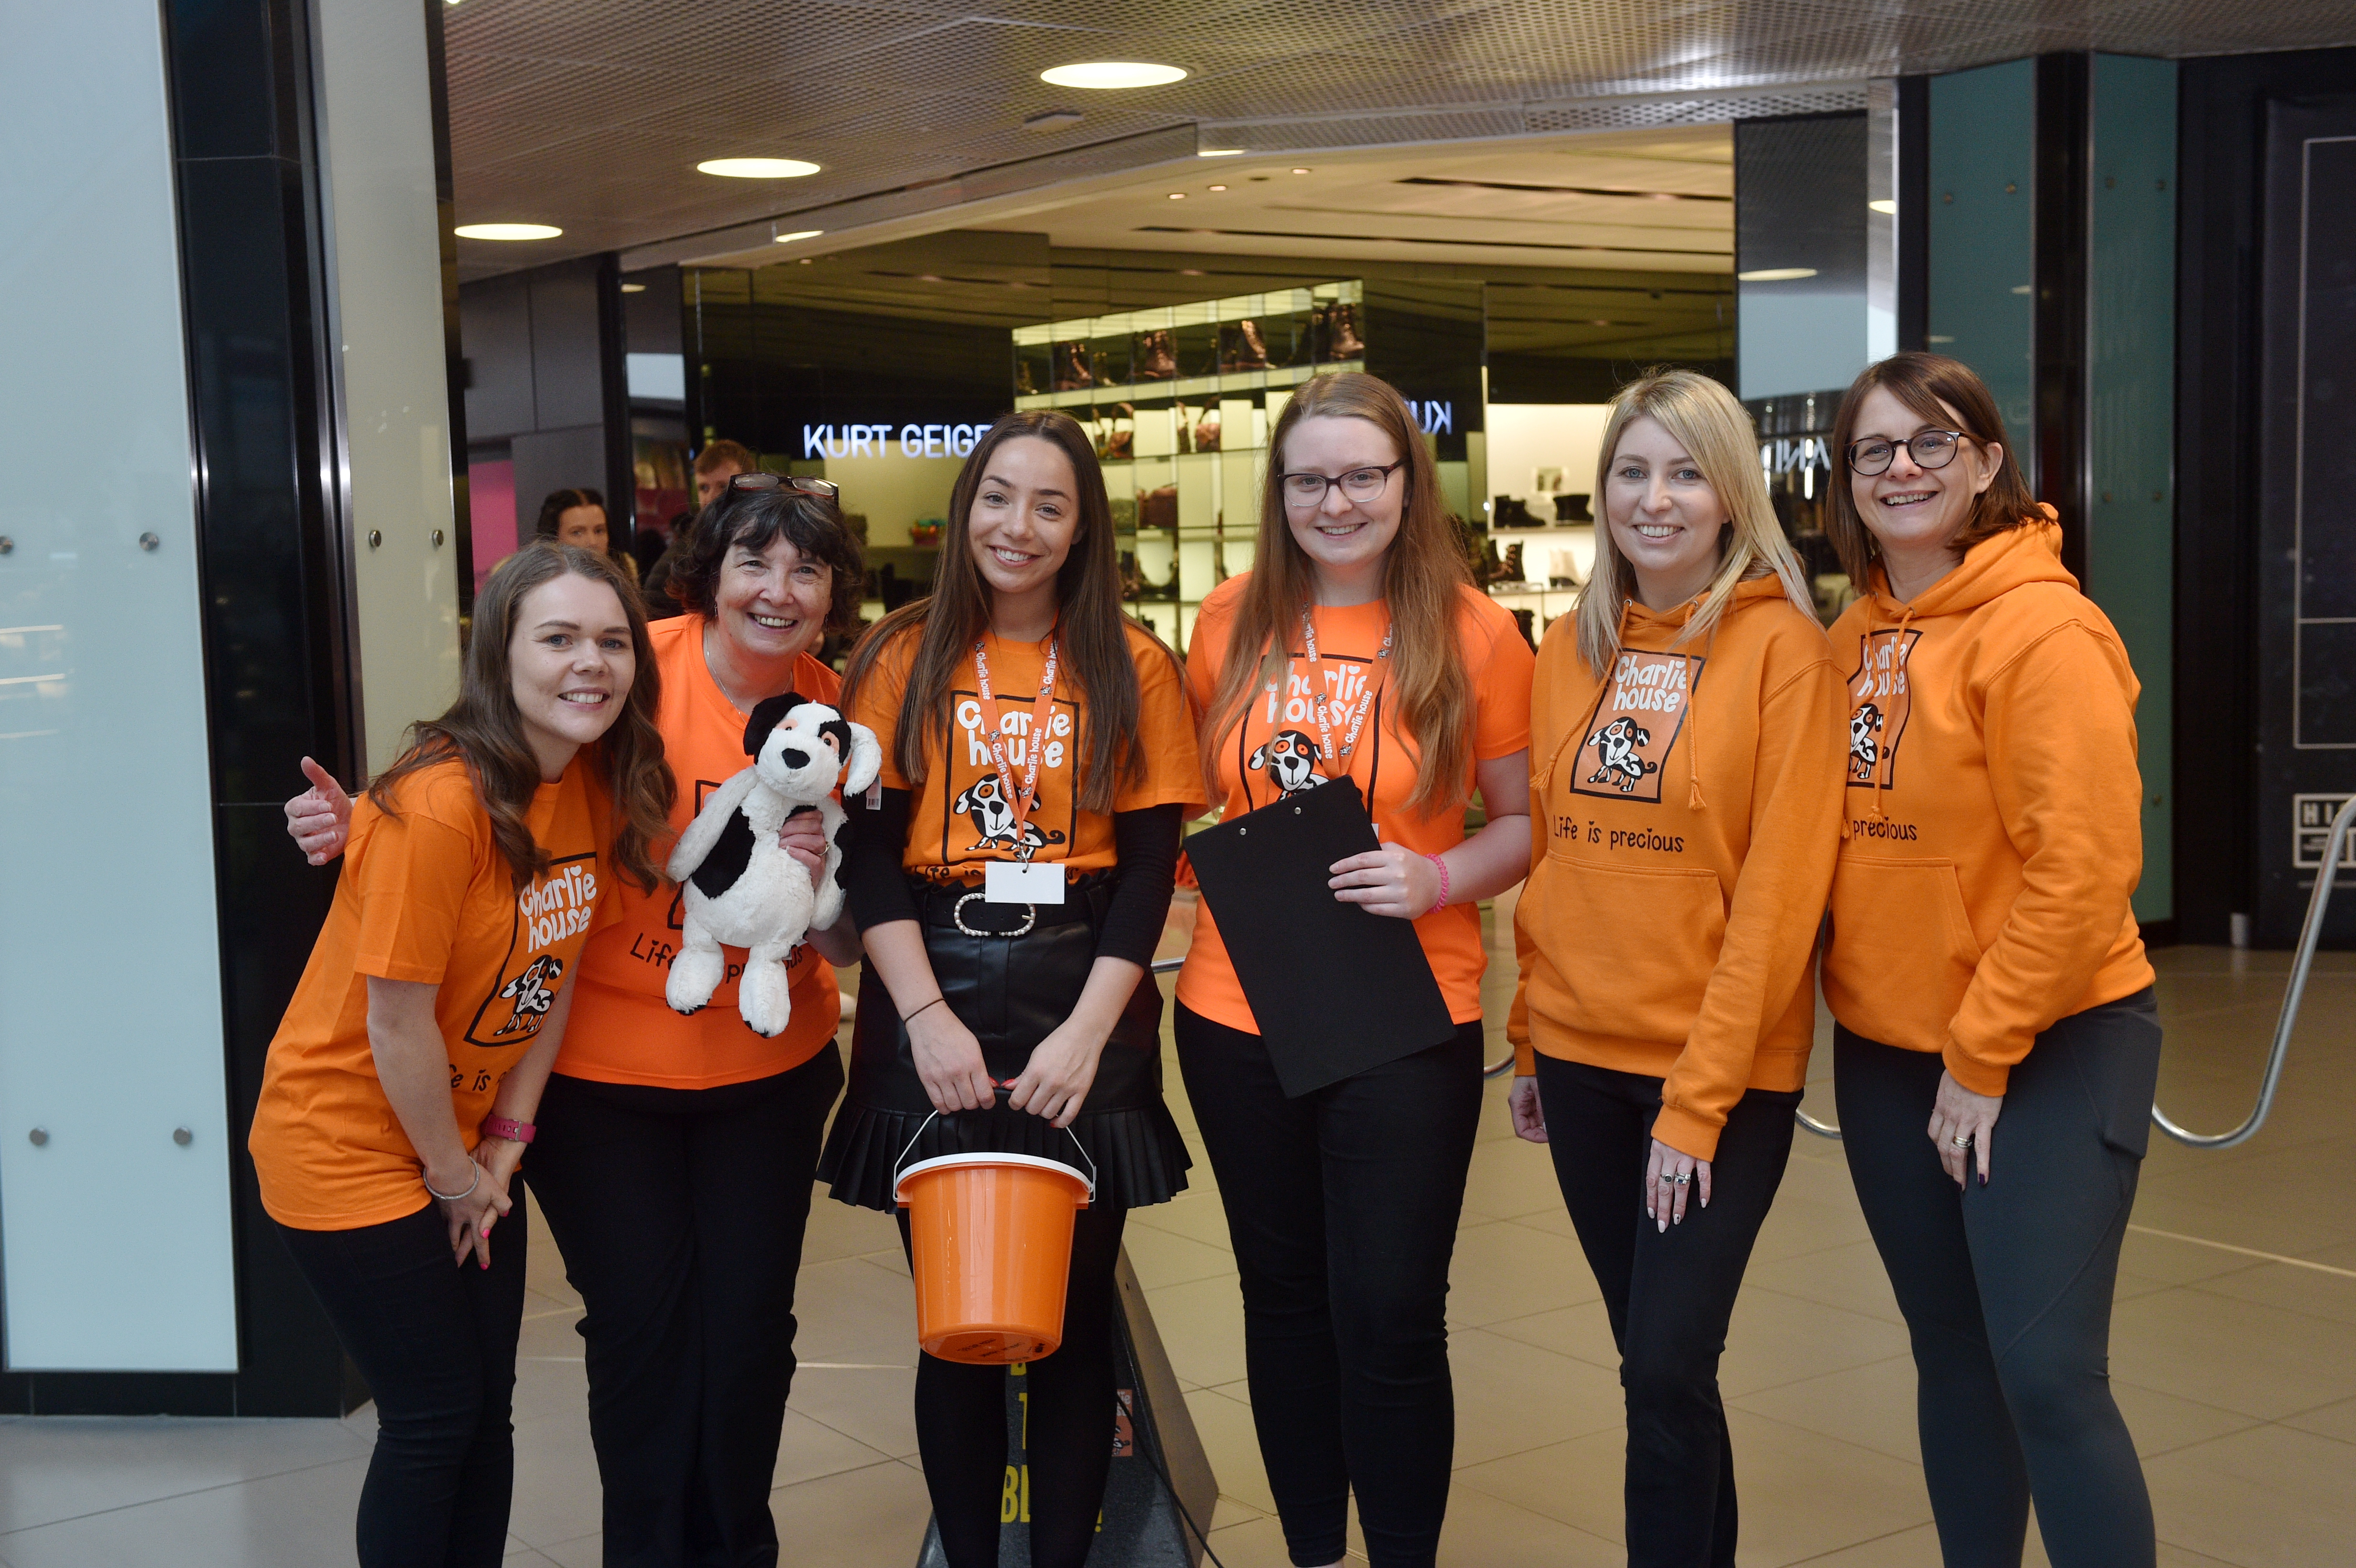 Charlie House Scavenger Hunt at Bon Accord Centre, Aberdeen Pictured are Charlie's House volunteers  Picture by DARRELL BENNS